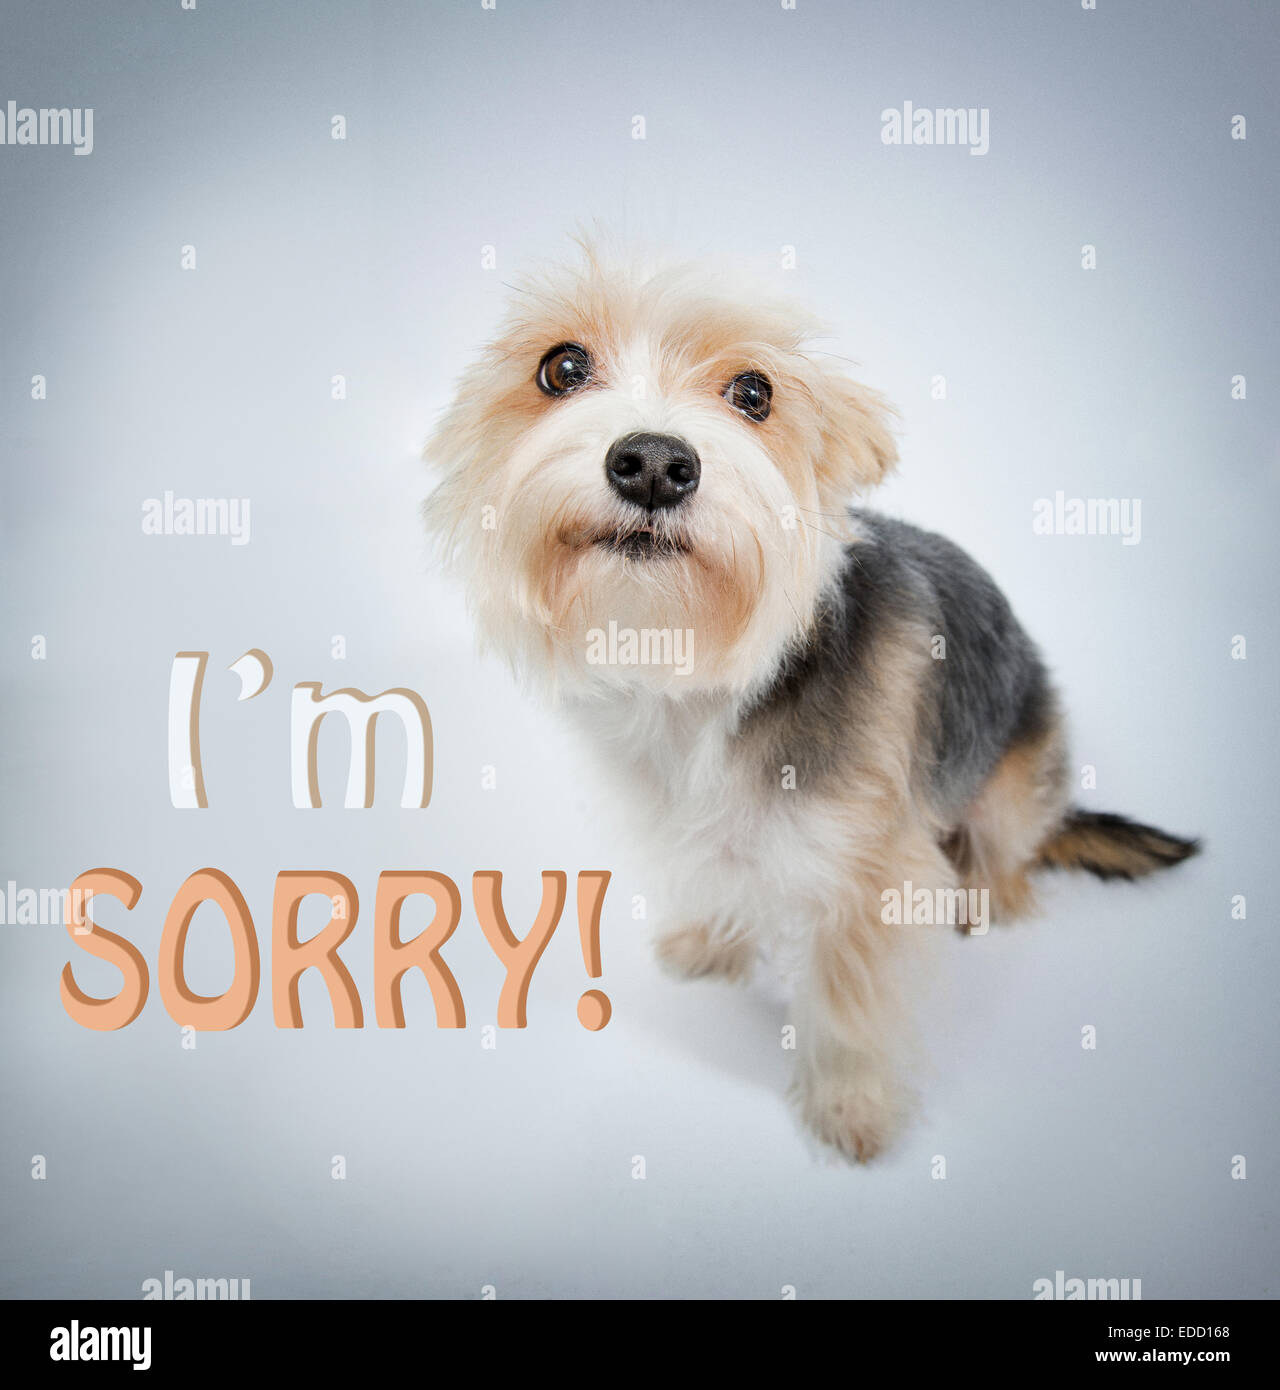 I'm sorry, lovely dog beg pardon and look - Stock Image